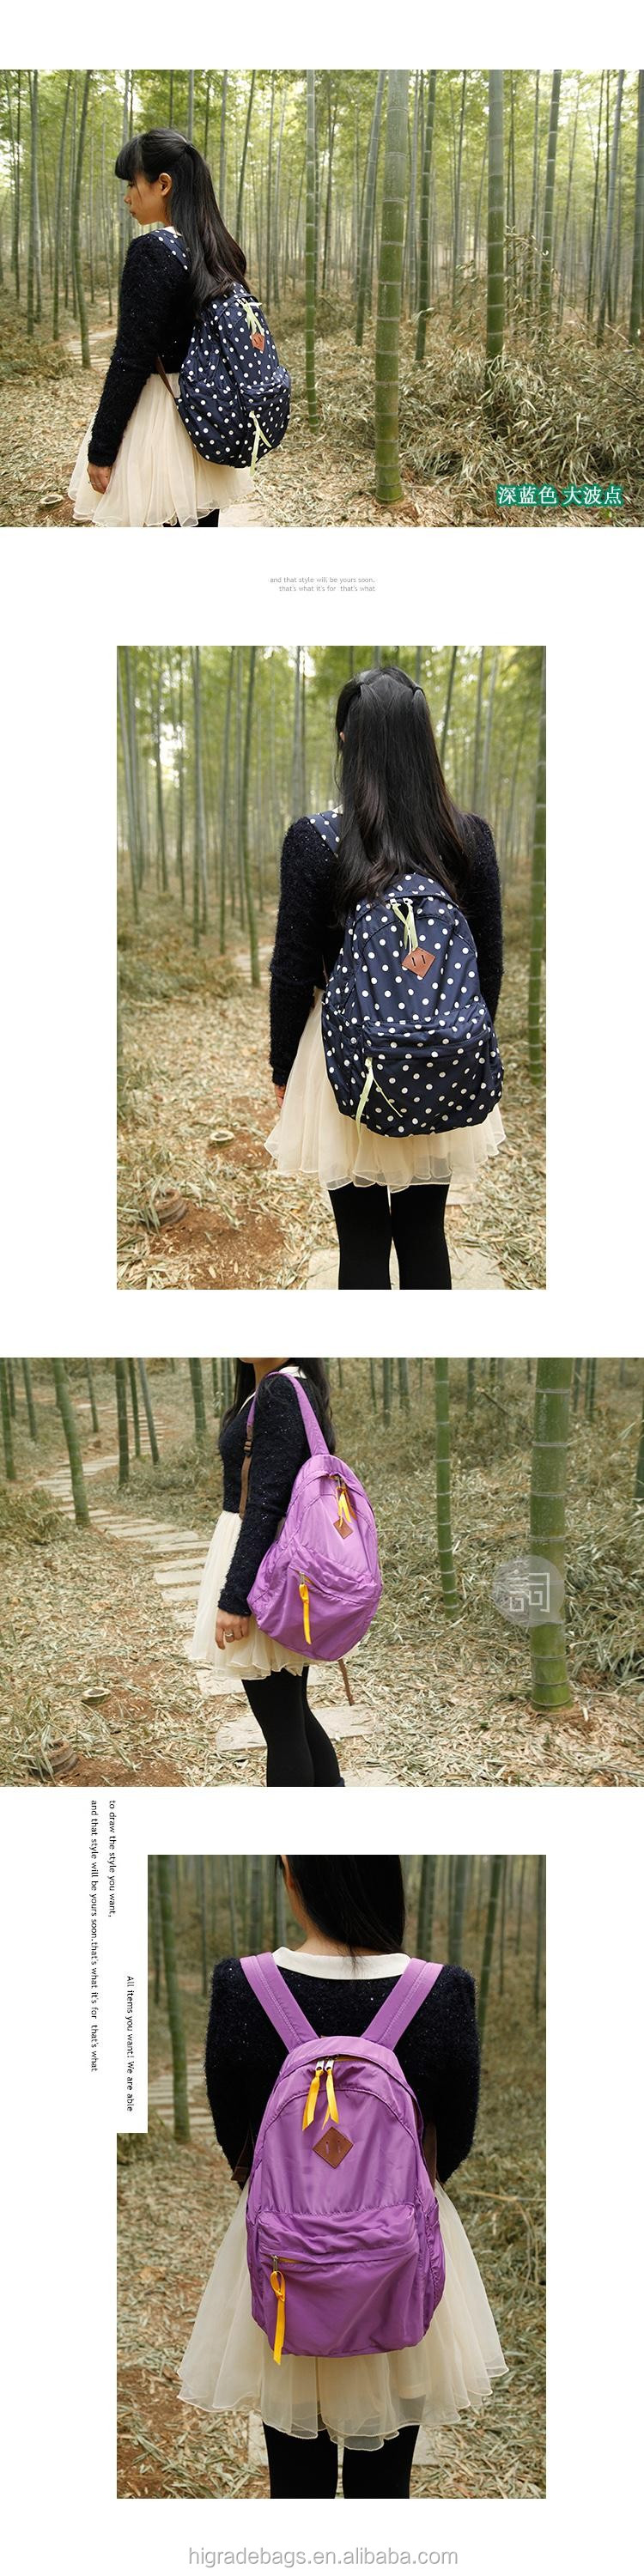 new style cheap foldable nylon backpack for girl